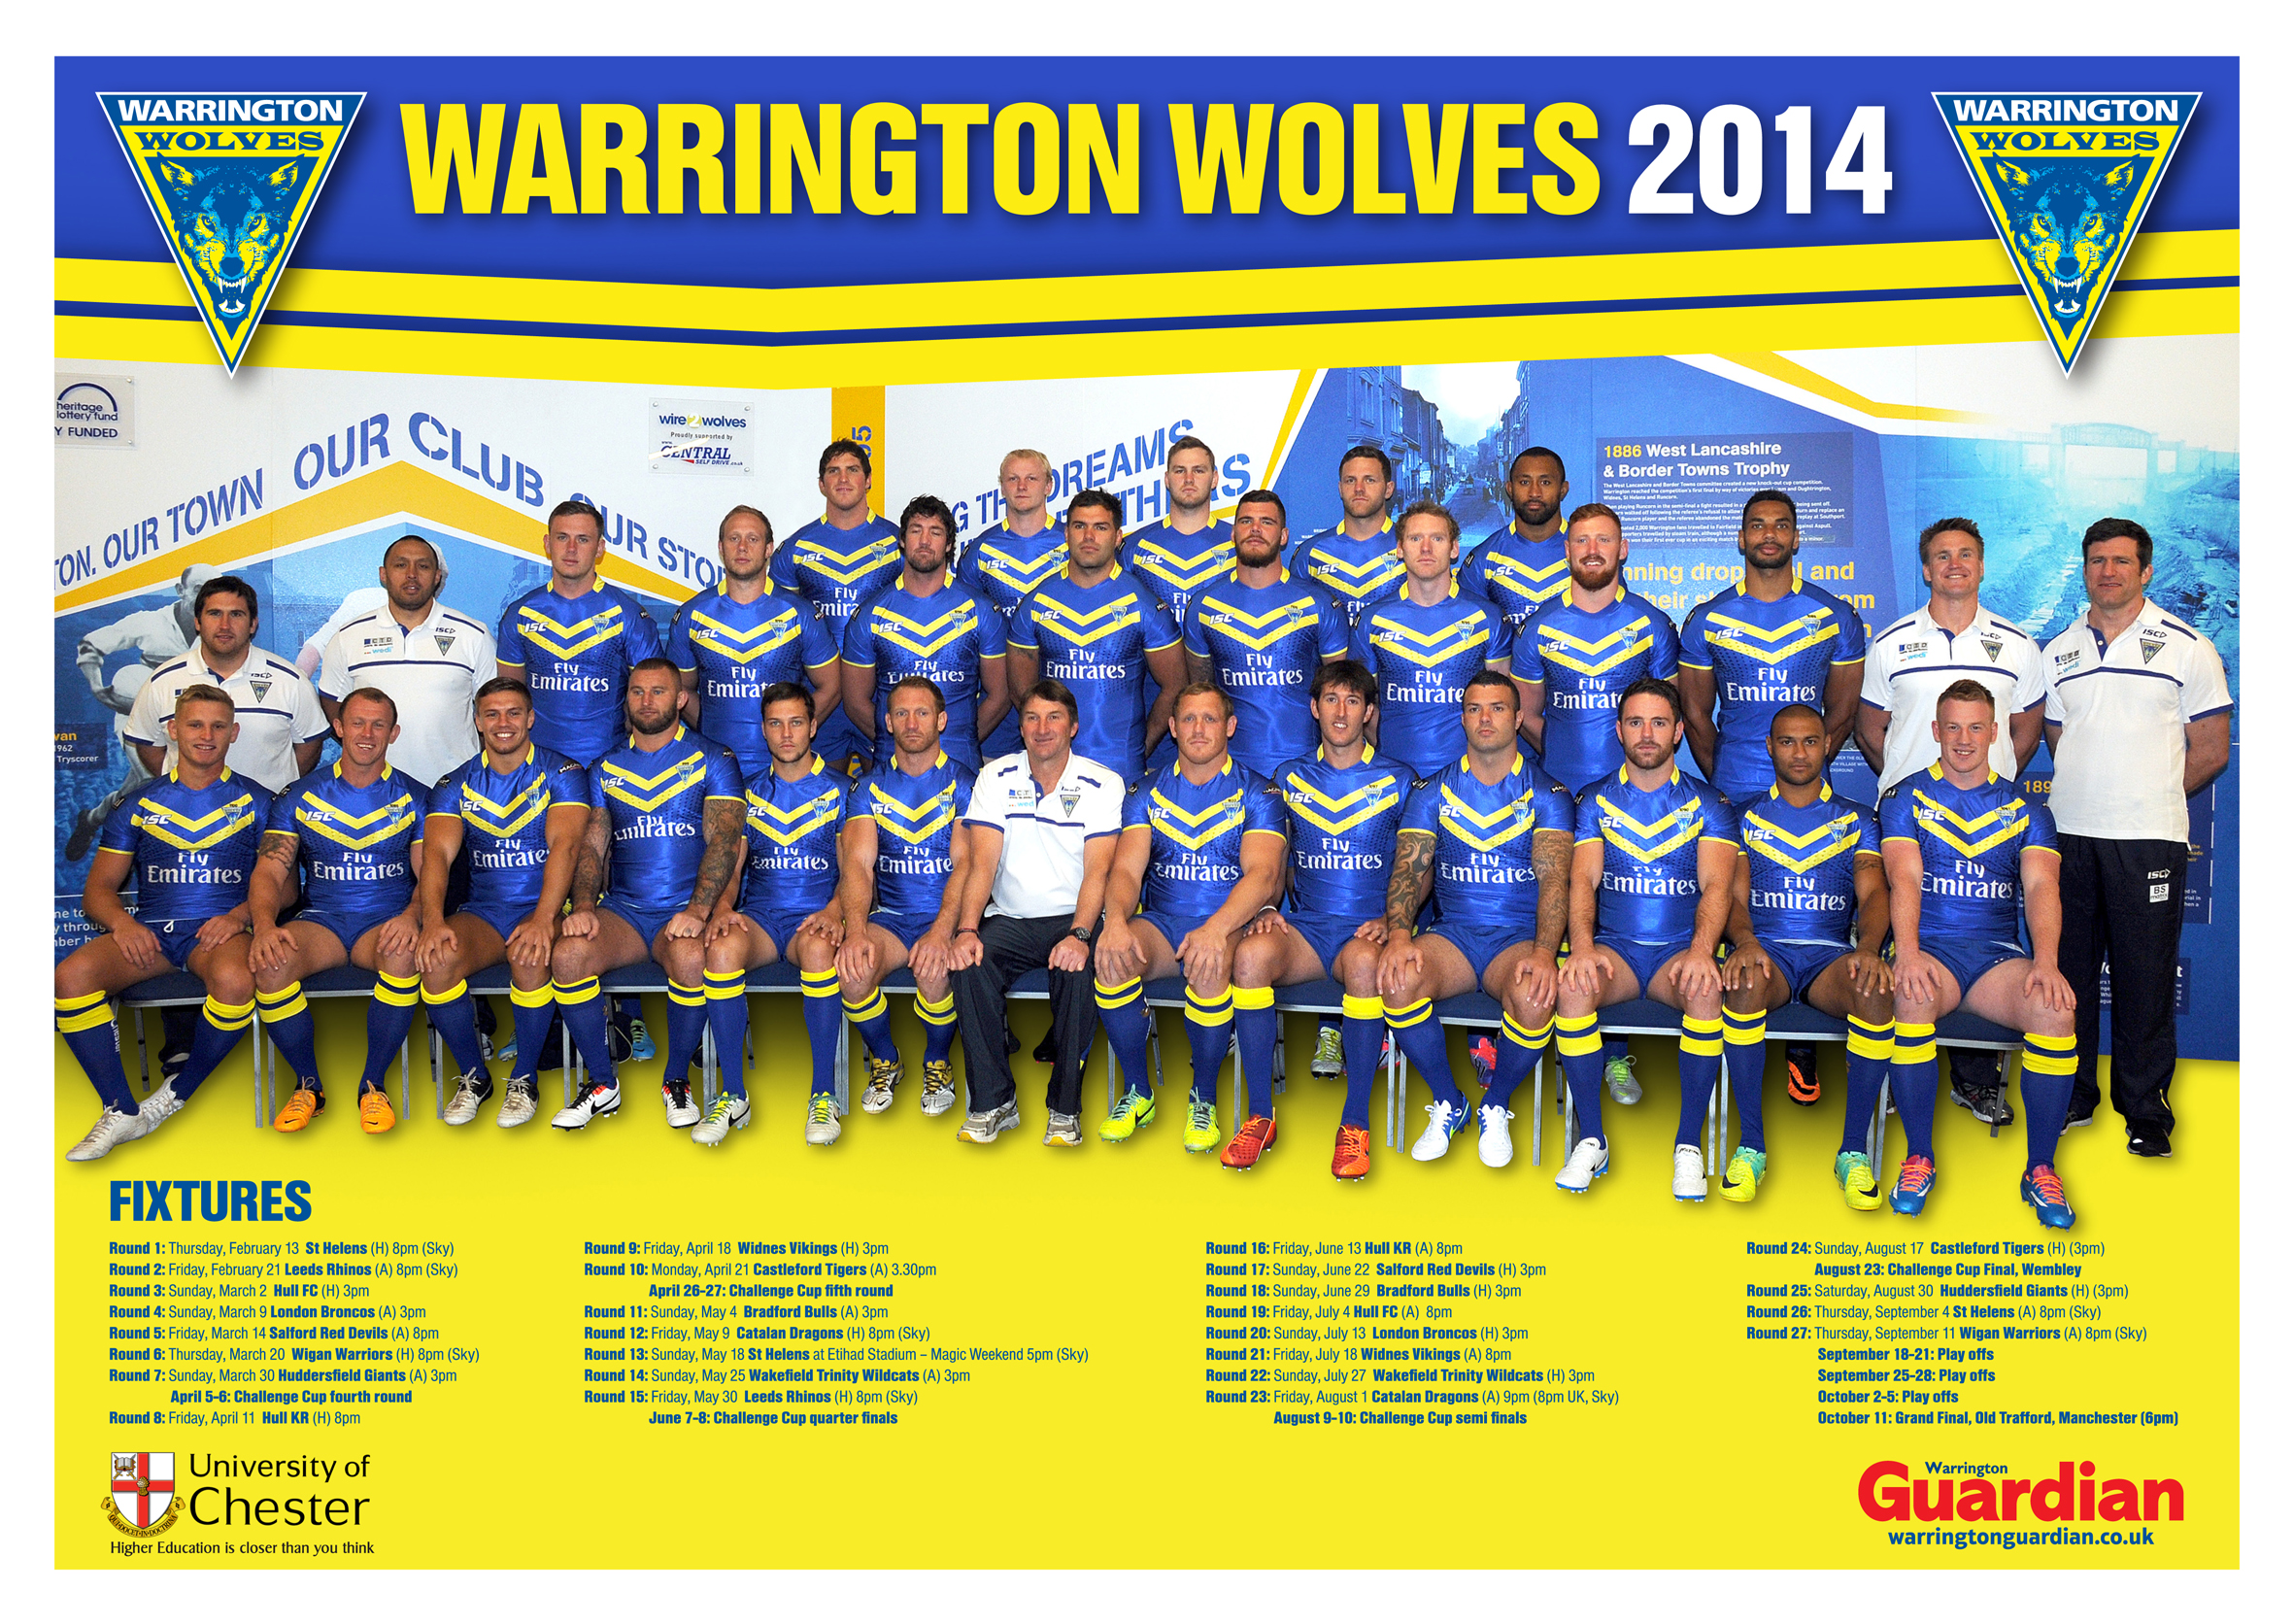 FREE: Double-sided glossy poster plus 12-page season preview pullout in today's Warrington Guardian